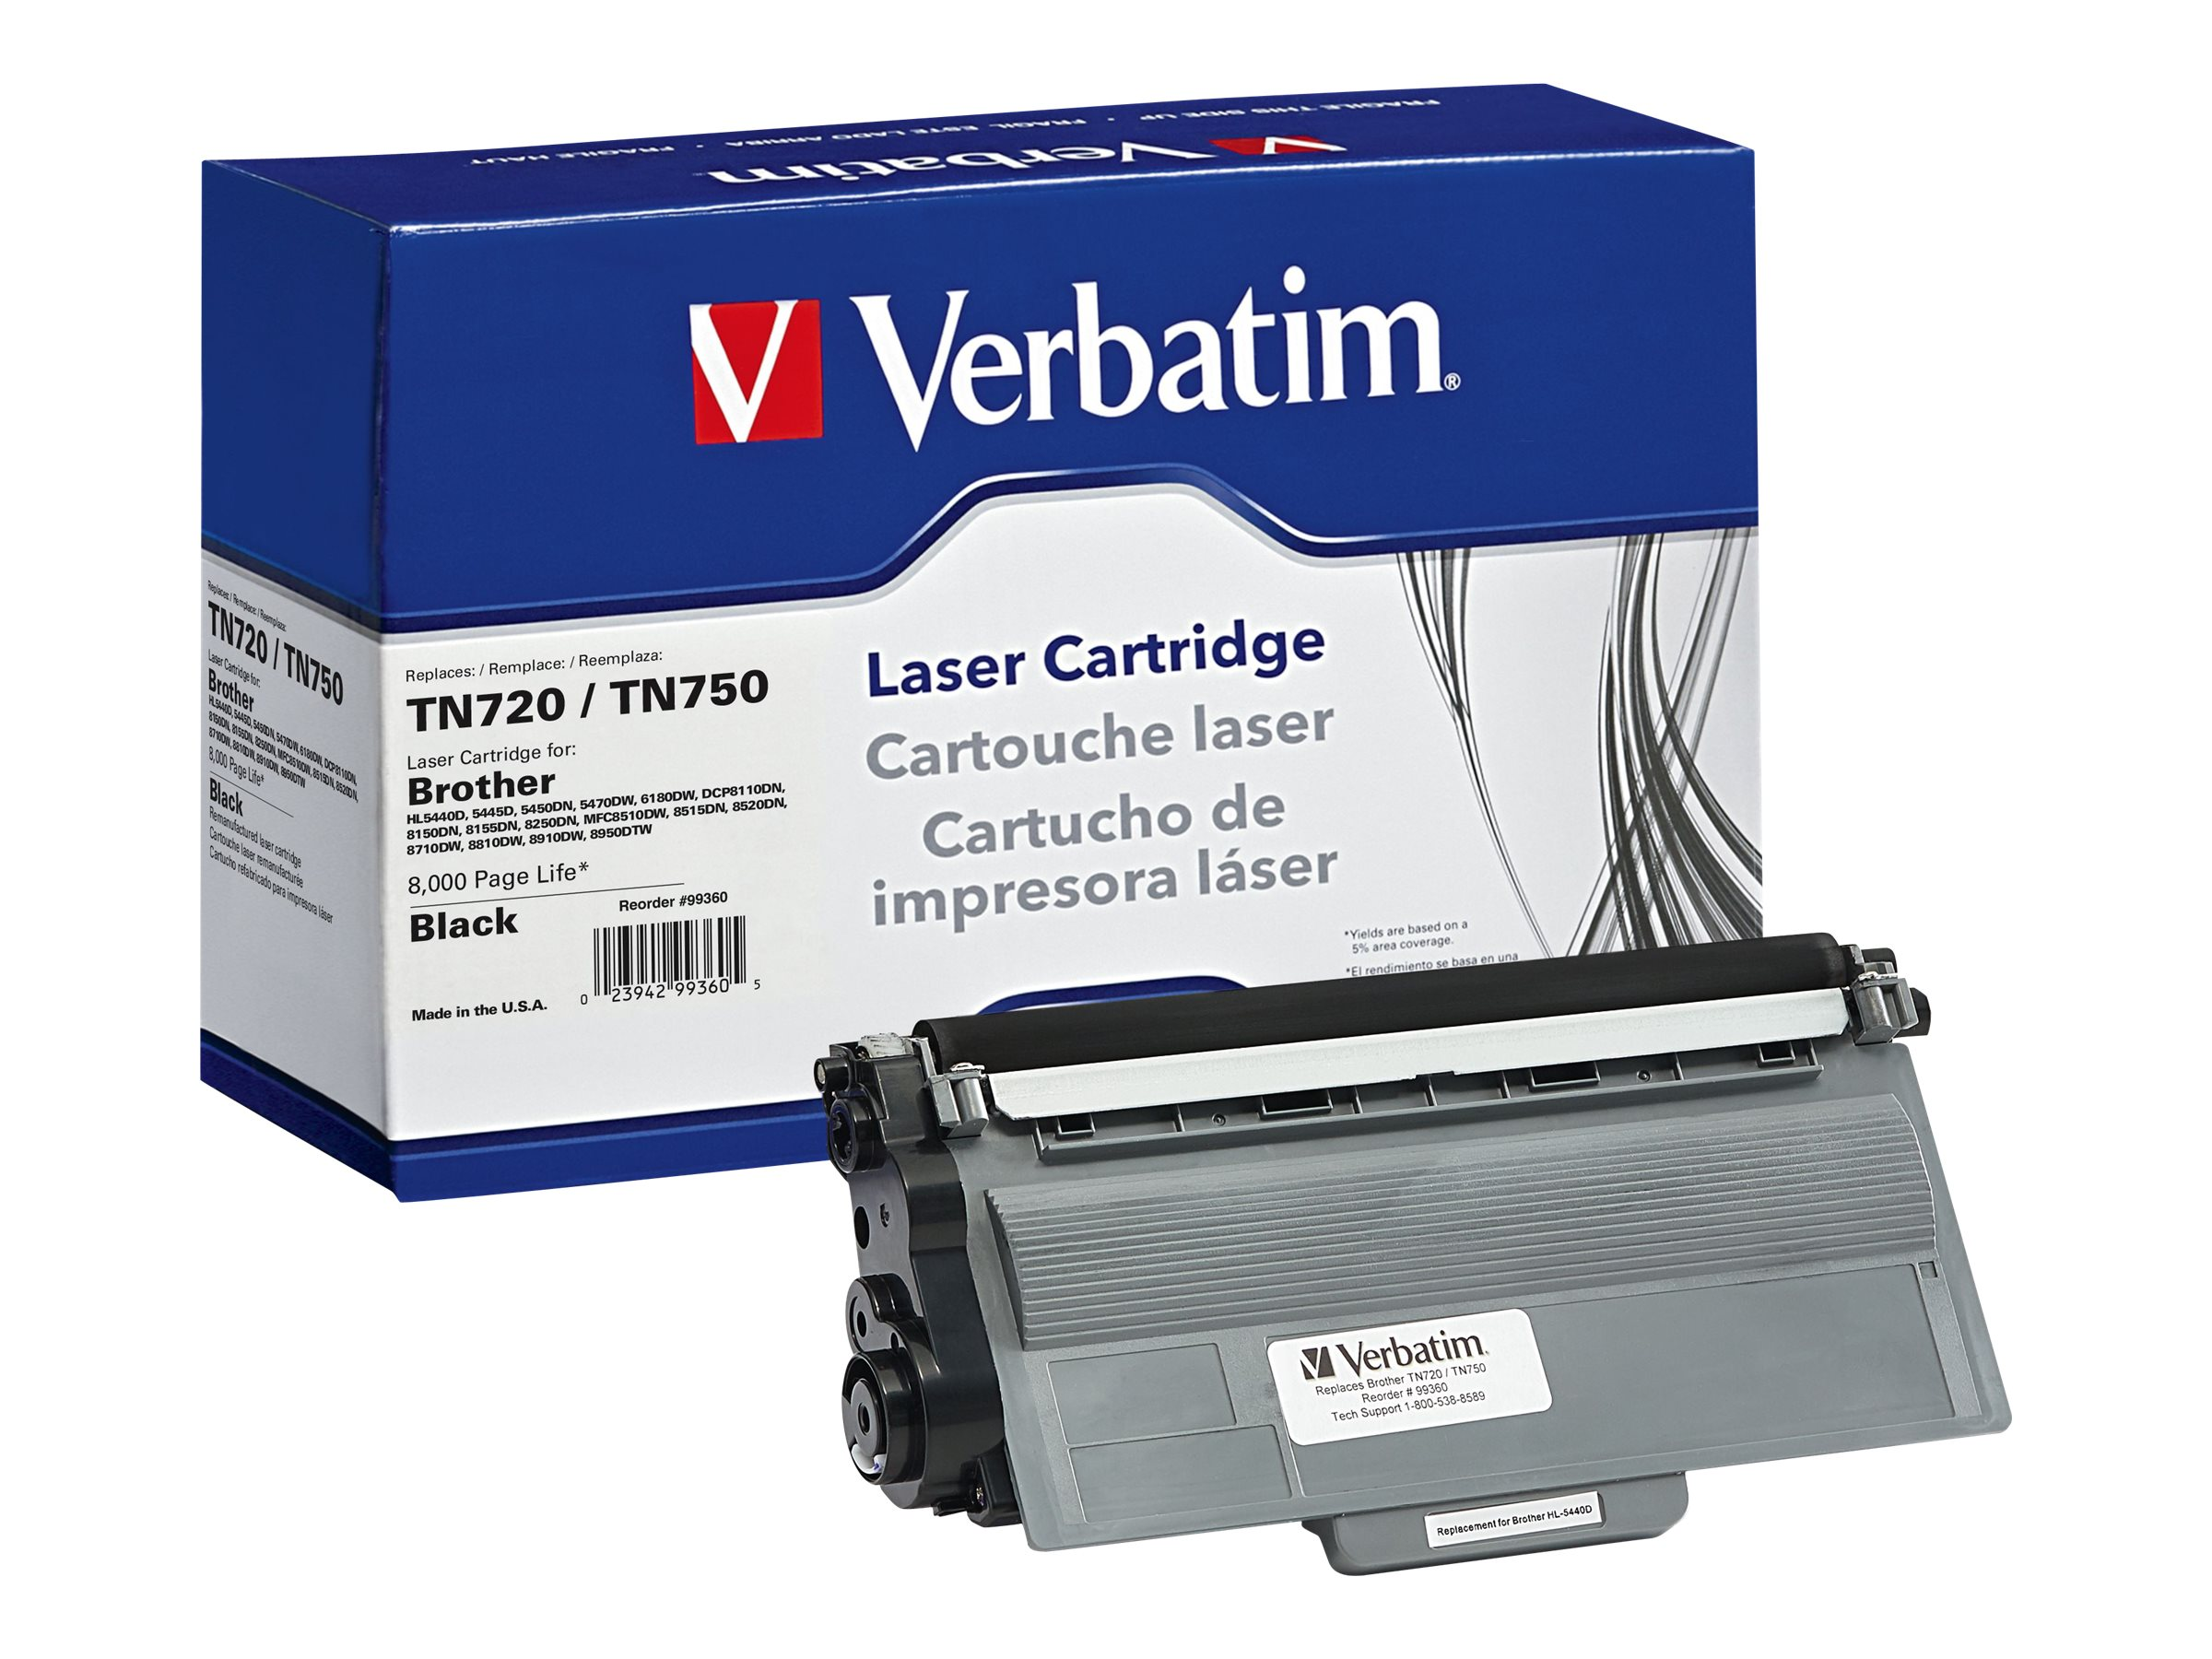 Verbatim TN720 TN750 Toner Cartridge for Brother, 99360